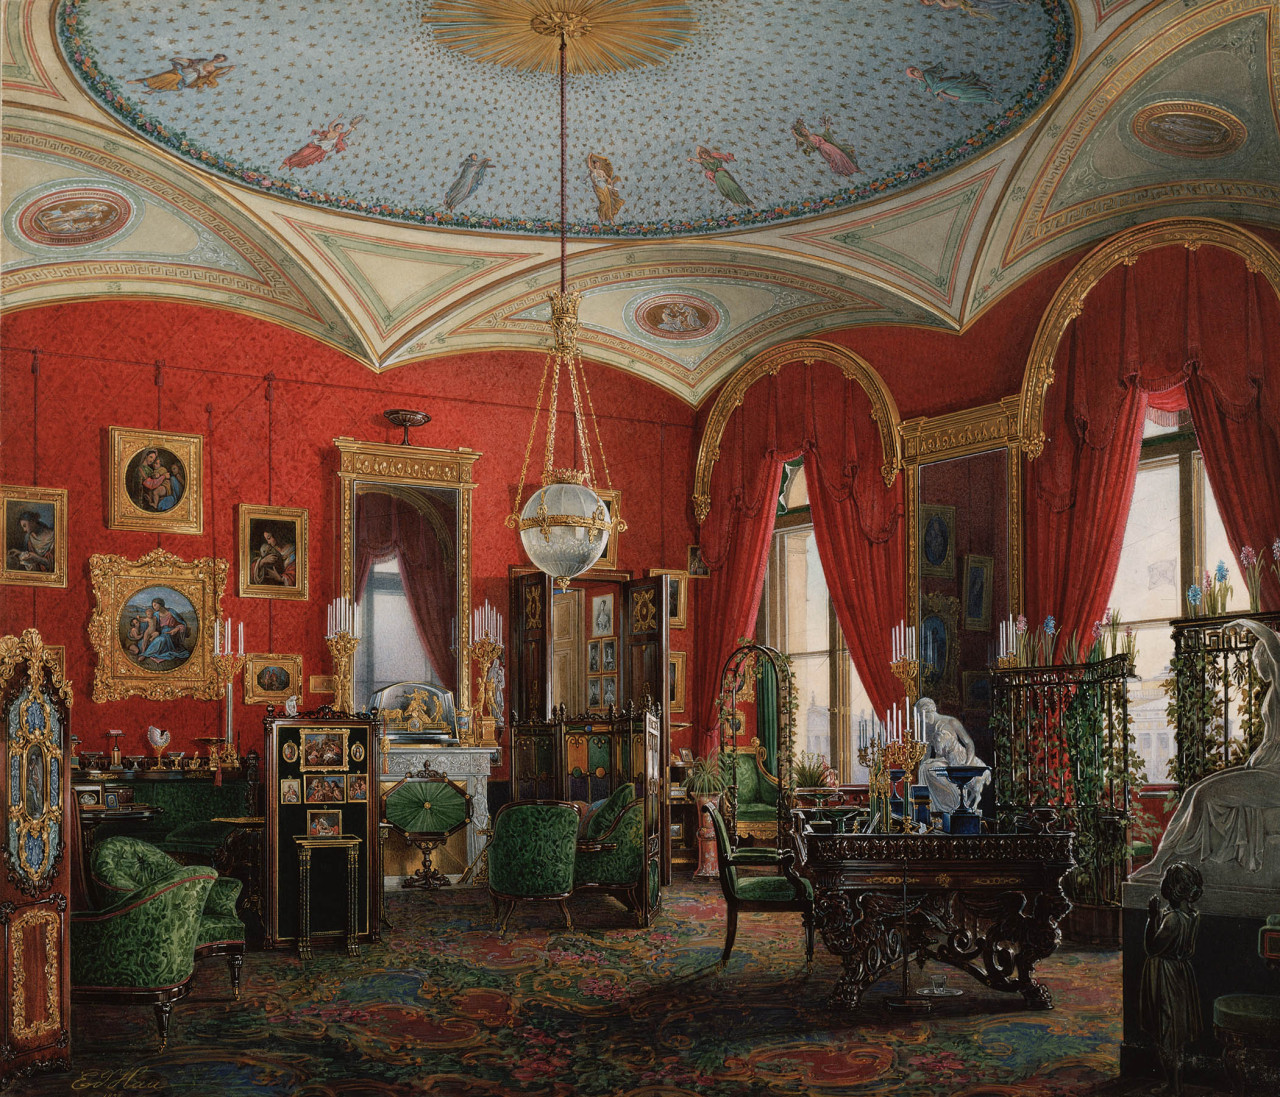 Edward Petrovich Hau, The Cabinet (Interiors of the Winter Palace, 1850 watercolor Download Image Visit Source @ forpilar.blogspot.ca